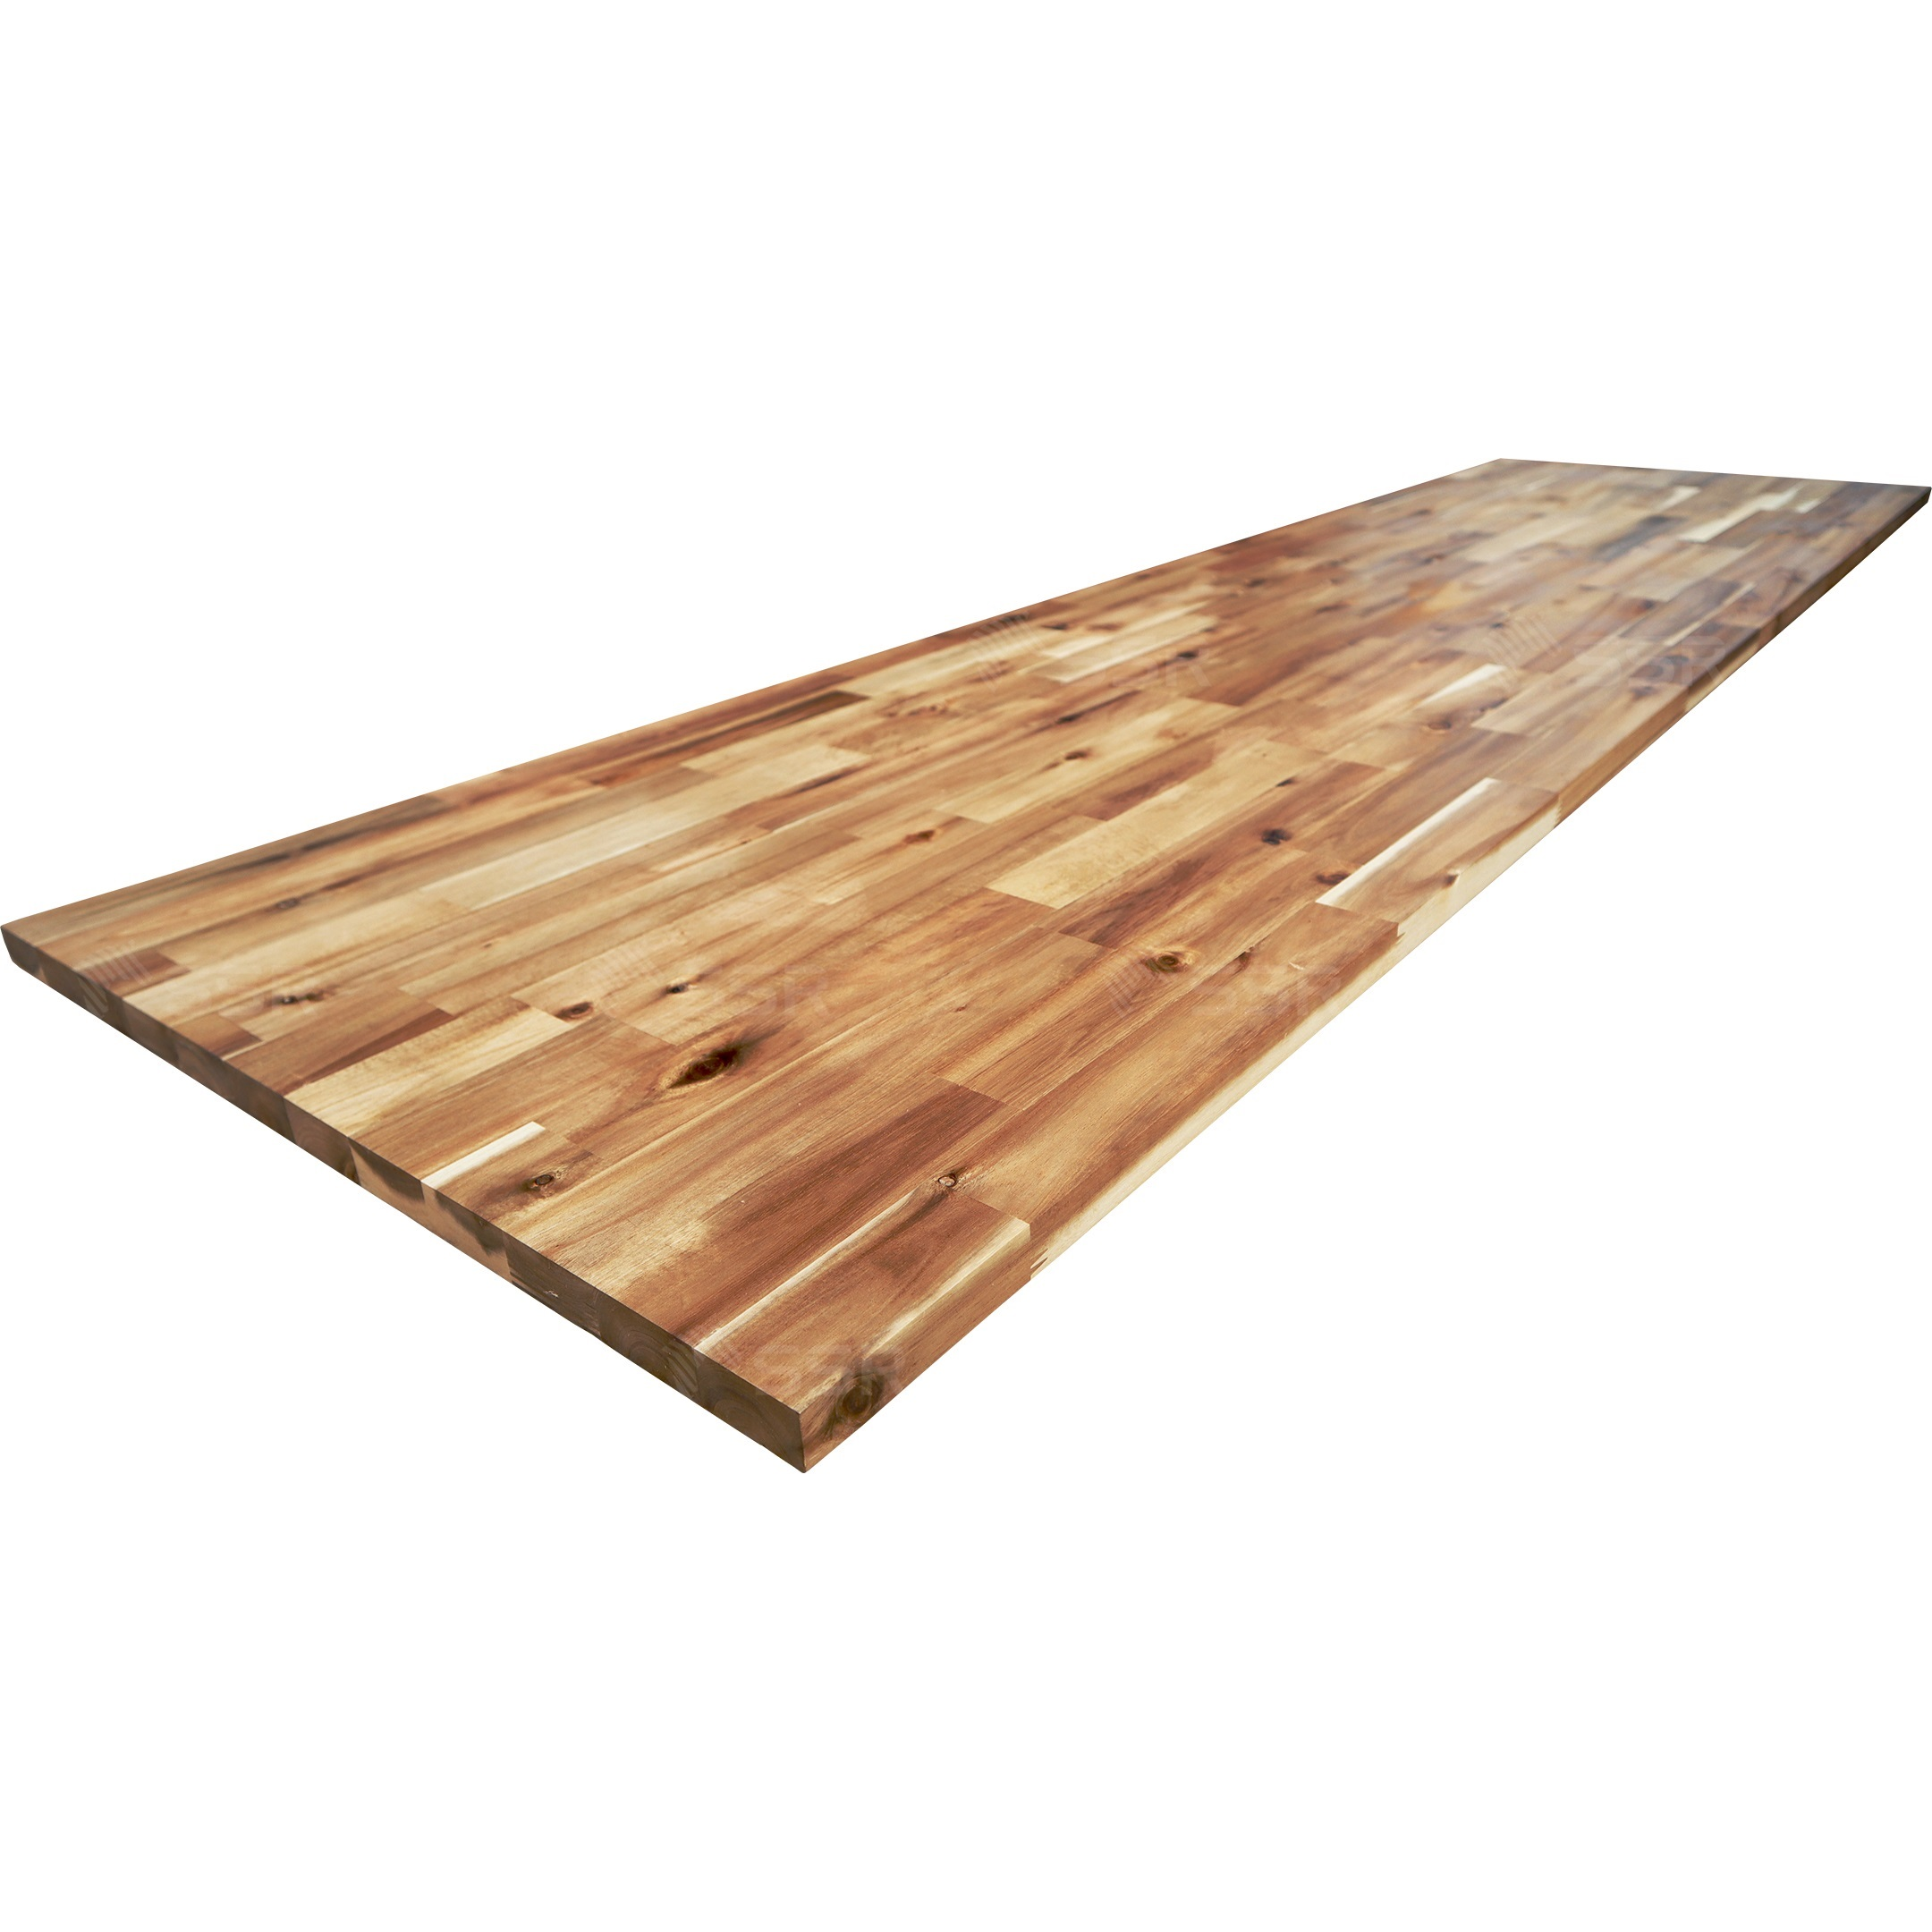 Acacia Solid Wood Hard Wood Wood Plank Wood Panel Wood Board Oil Coating Oil Finish Countertop Table Top Wood Industry International Wood Product Supplier FSC Certified International Business Import Export